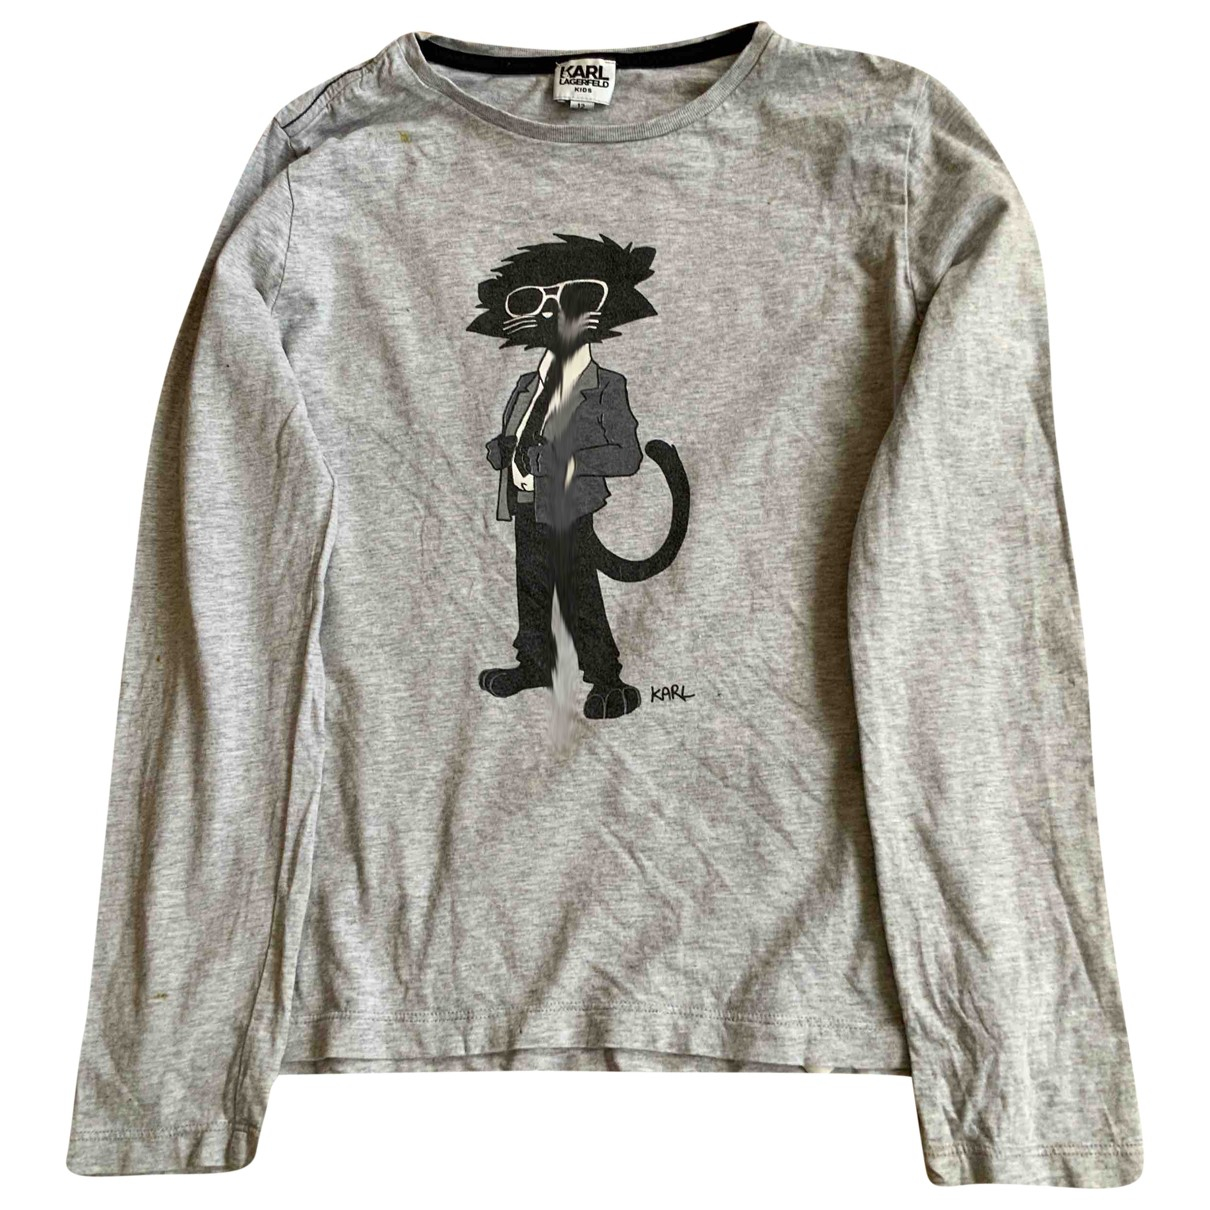 Karl Lagerfeld \N Grey Cotton  top for Kids 12 years - XS UK